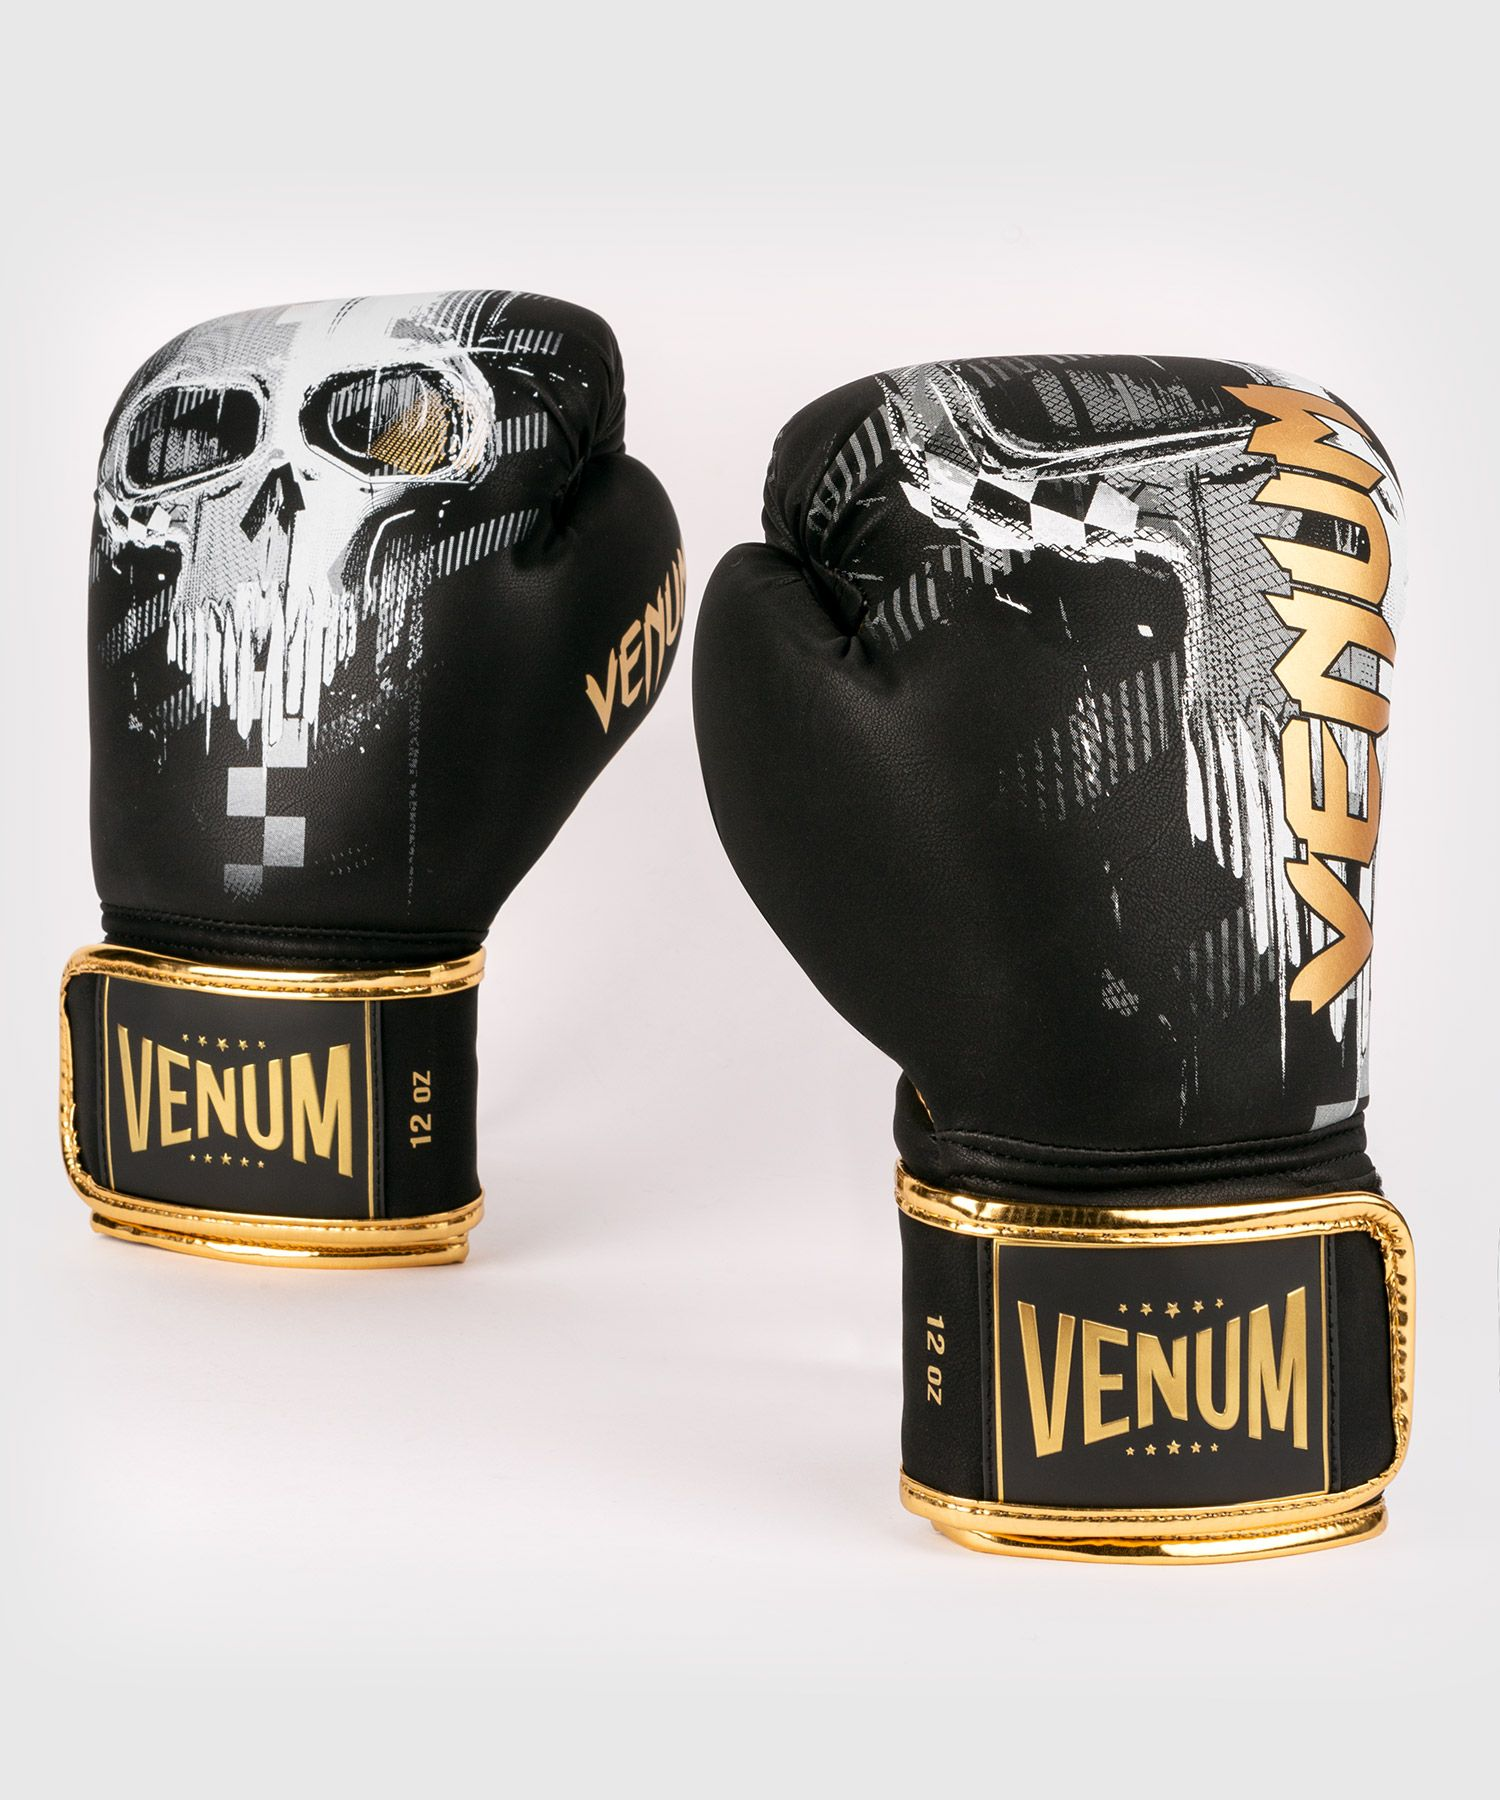 VENUM ボクシンググローブ SKULL BOXING GLOVES //スパーリンググローブ ボクシング キックボクシング 格闘技 送料無料